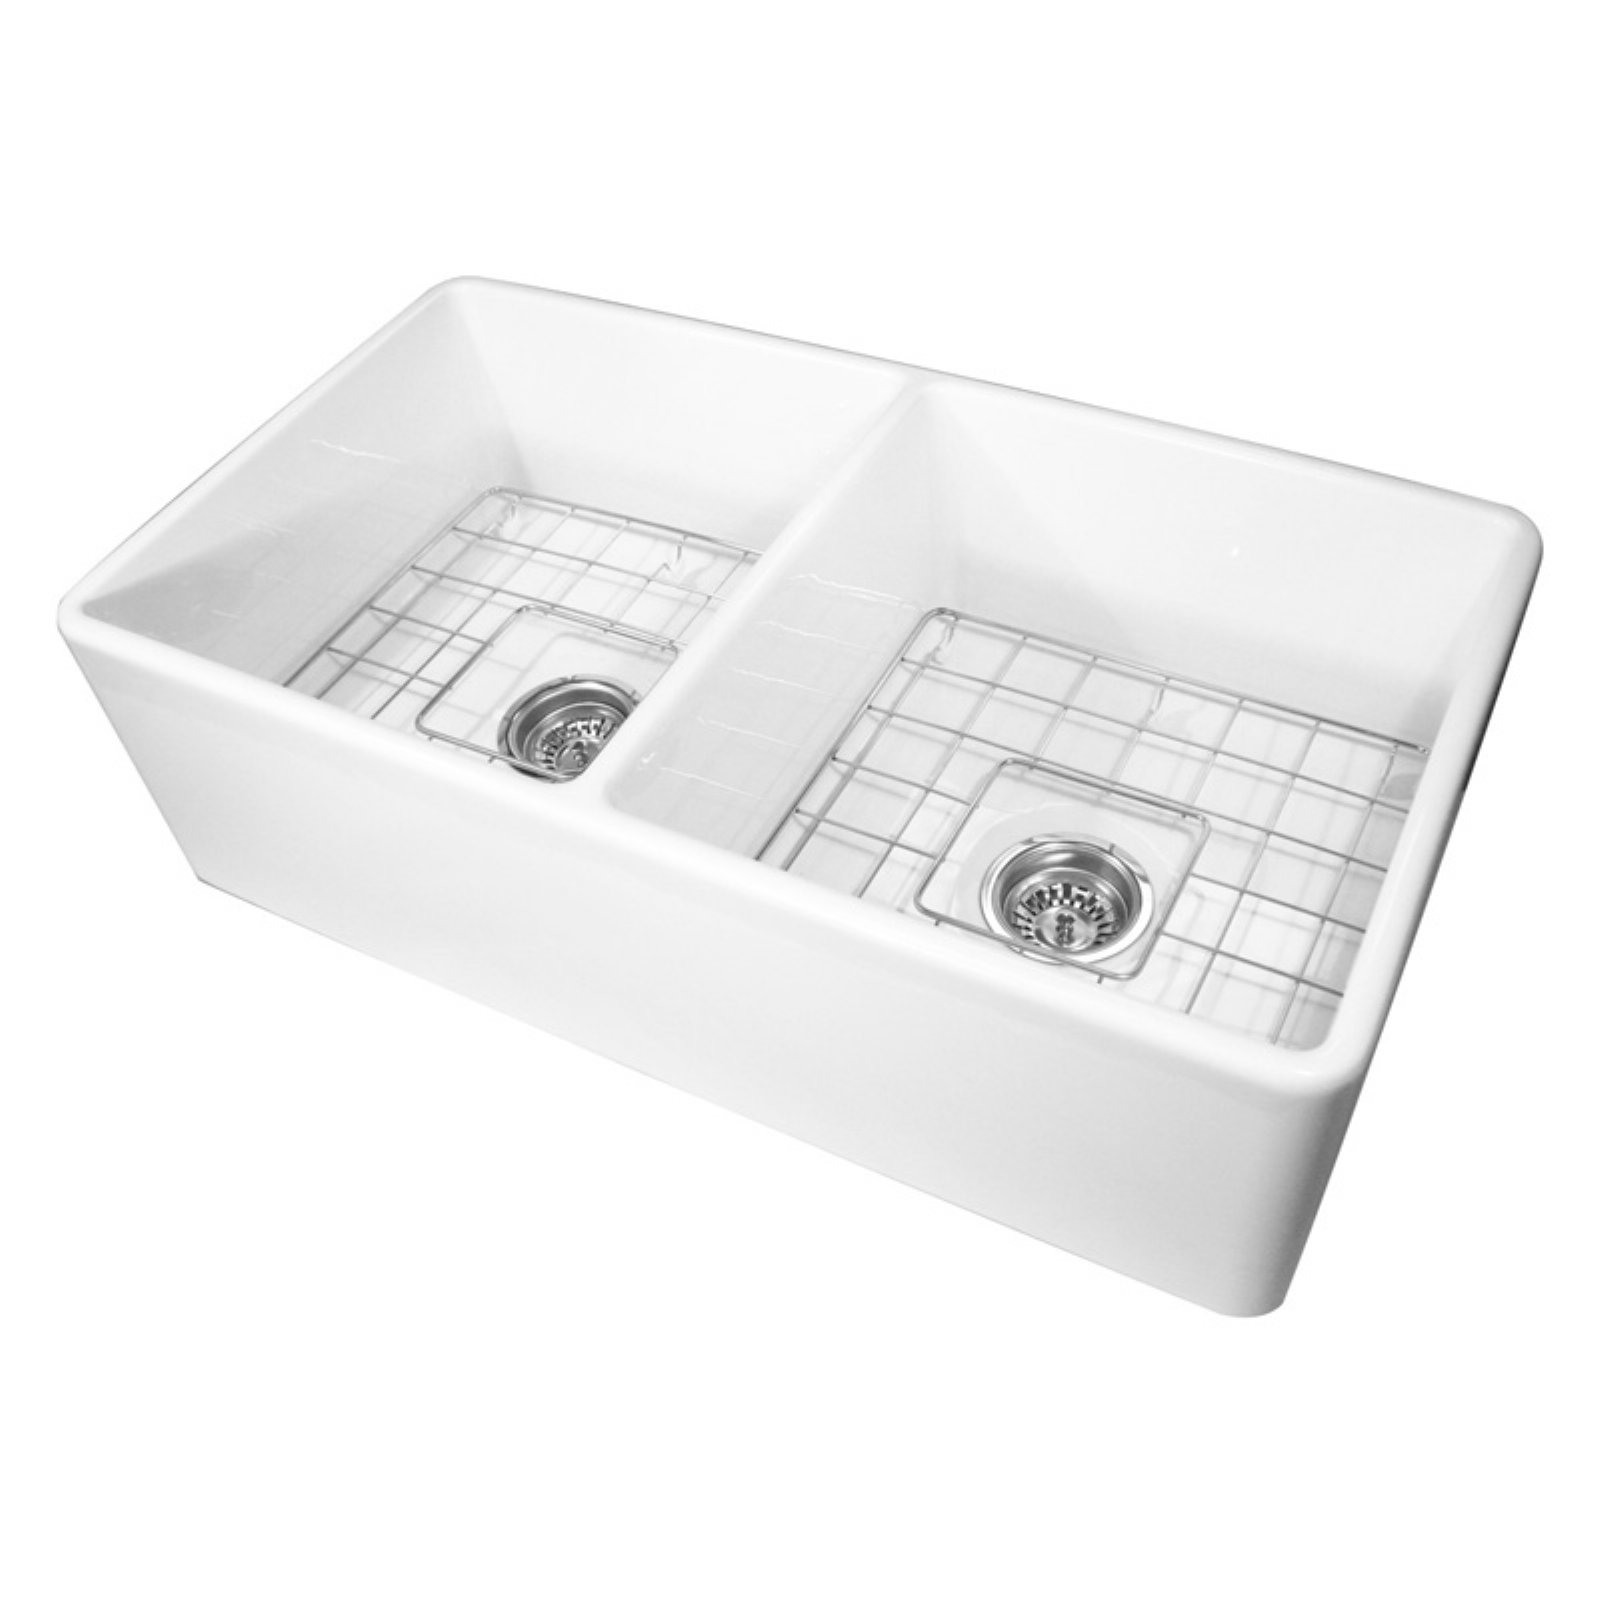 Nantucket Sinks T FCFS33 DBL 33 Double Basin Farmhouse Kitchen Sink With  Grids And Drains   Walmart.com